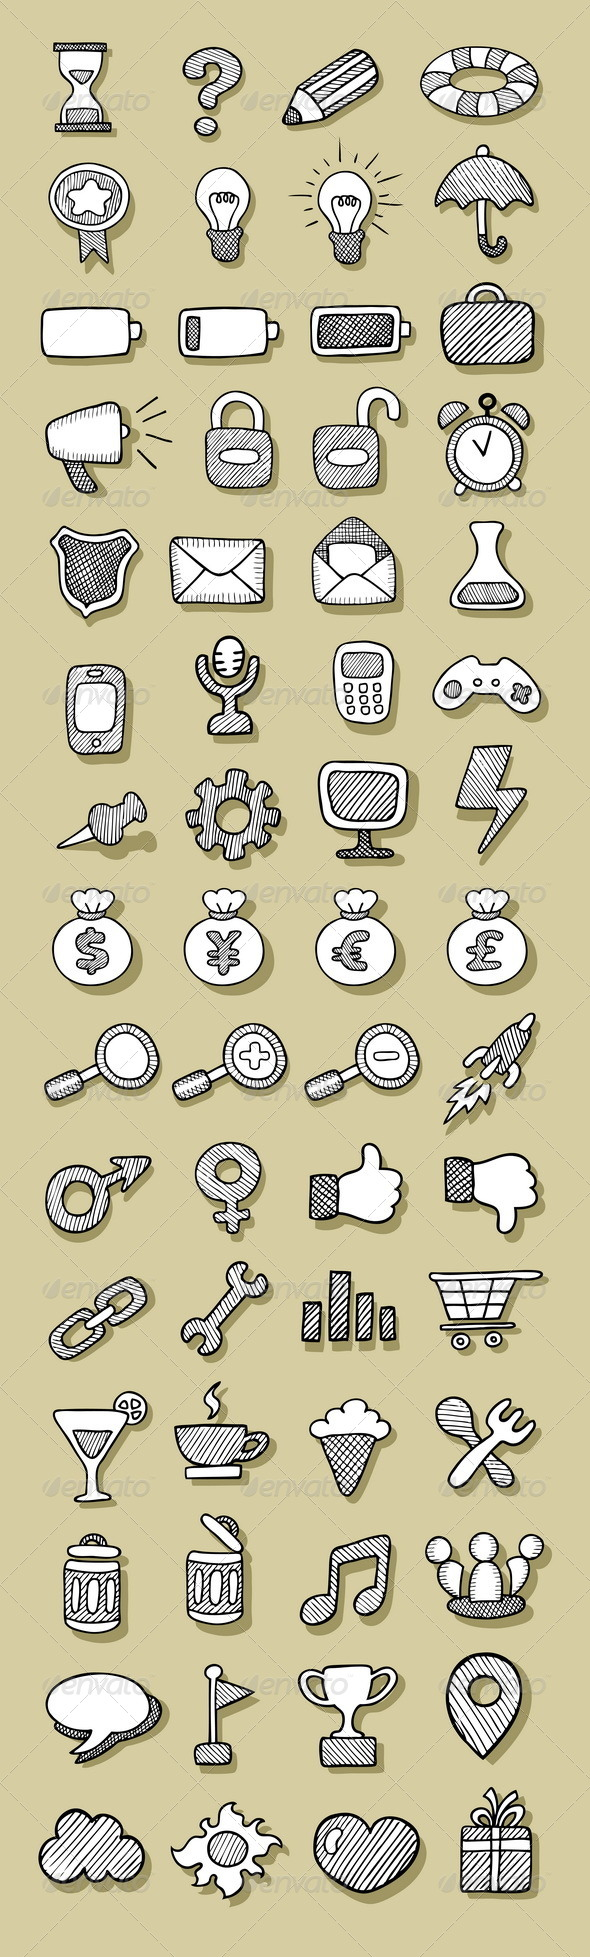 GraphicRiver Icons Sketch 4608407